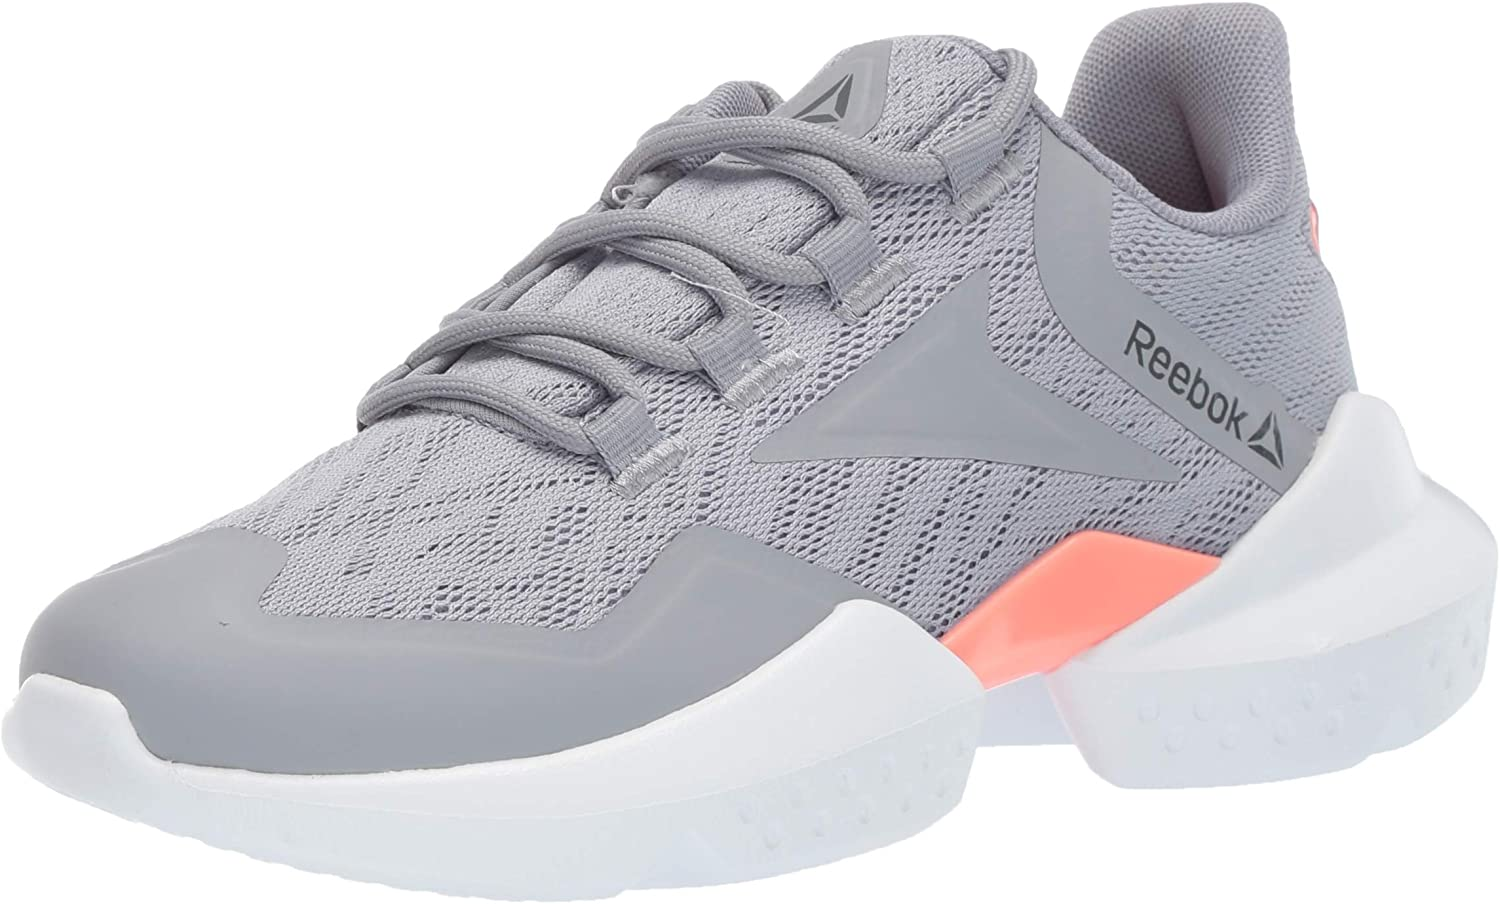 Reebok Womens Split Fuel Running shoes